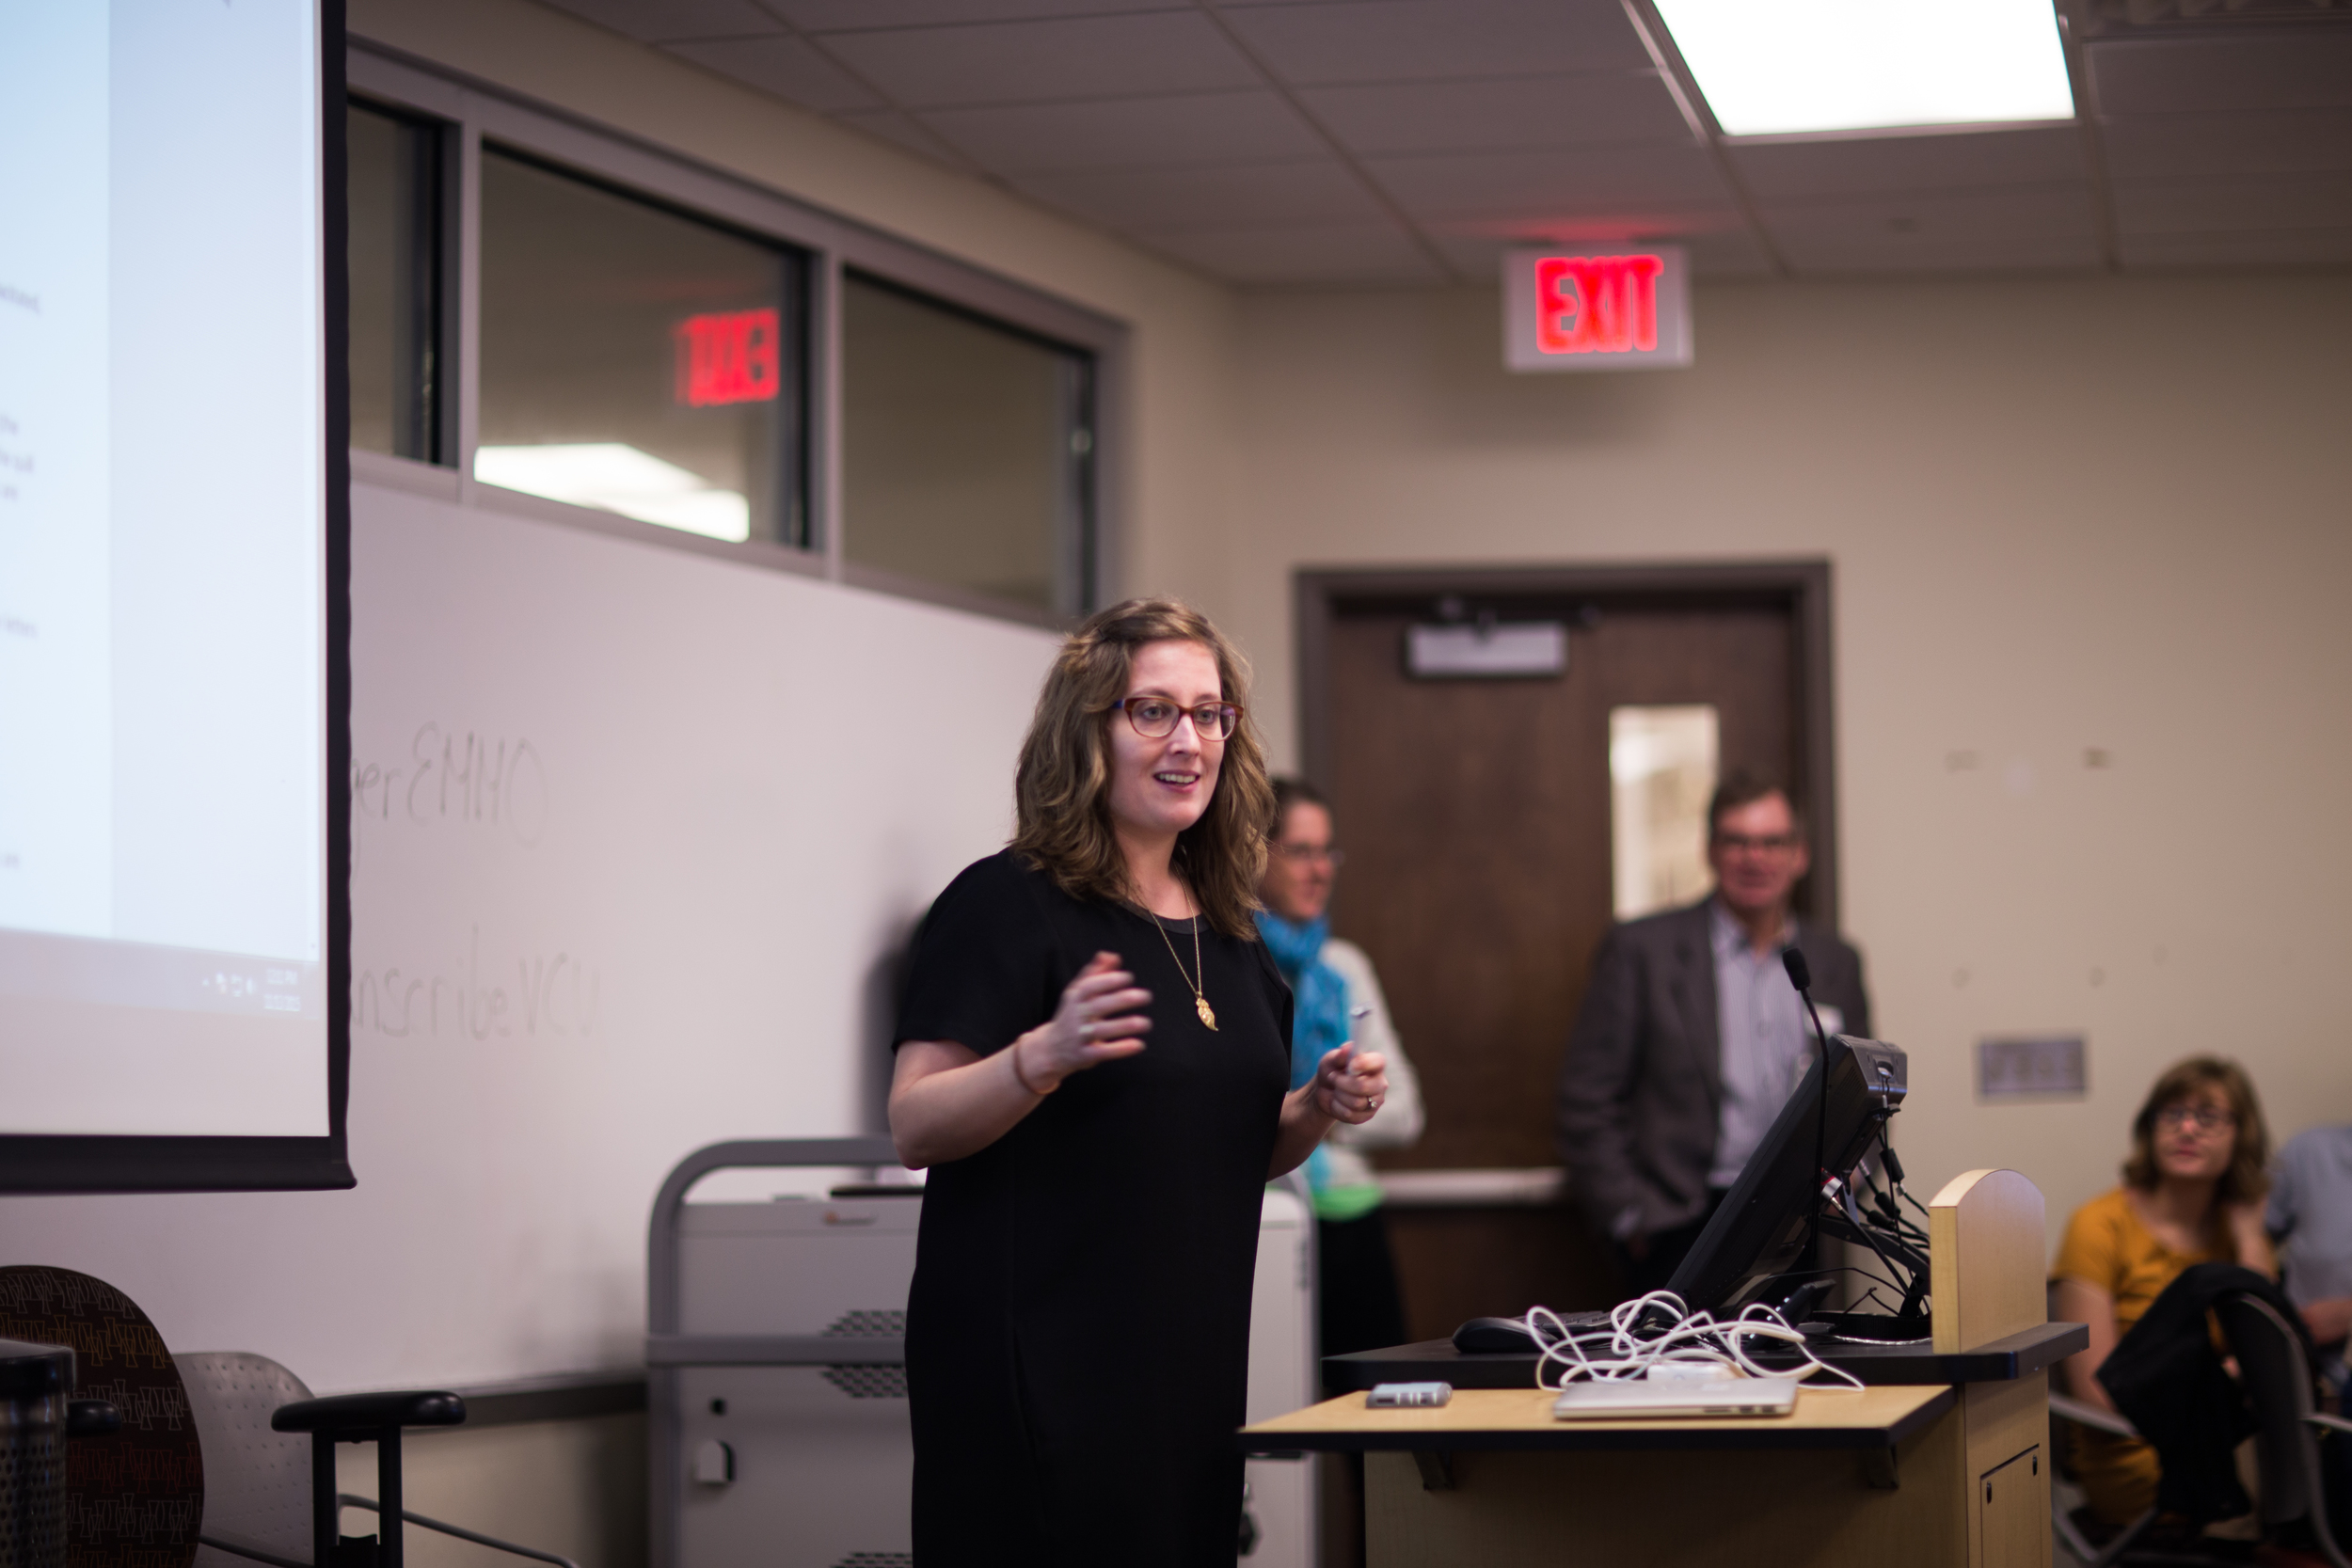 Here I am (gesticulating enthusiastically about accessibility) at the beginning of the transcribathon. Photo by Tom Woodward.